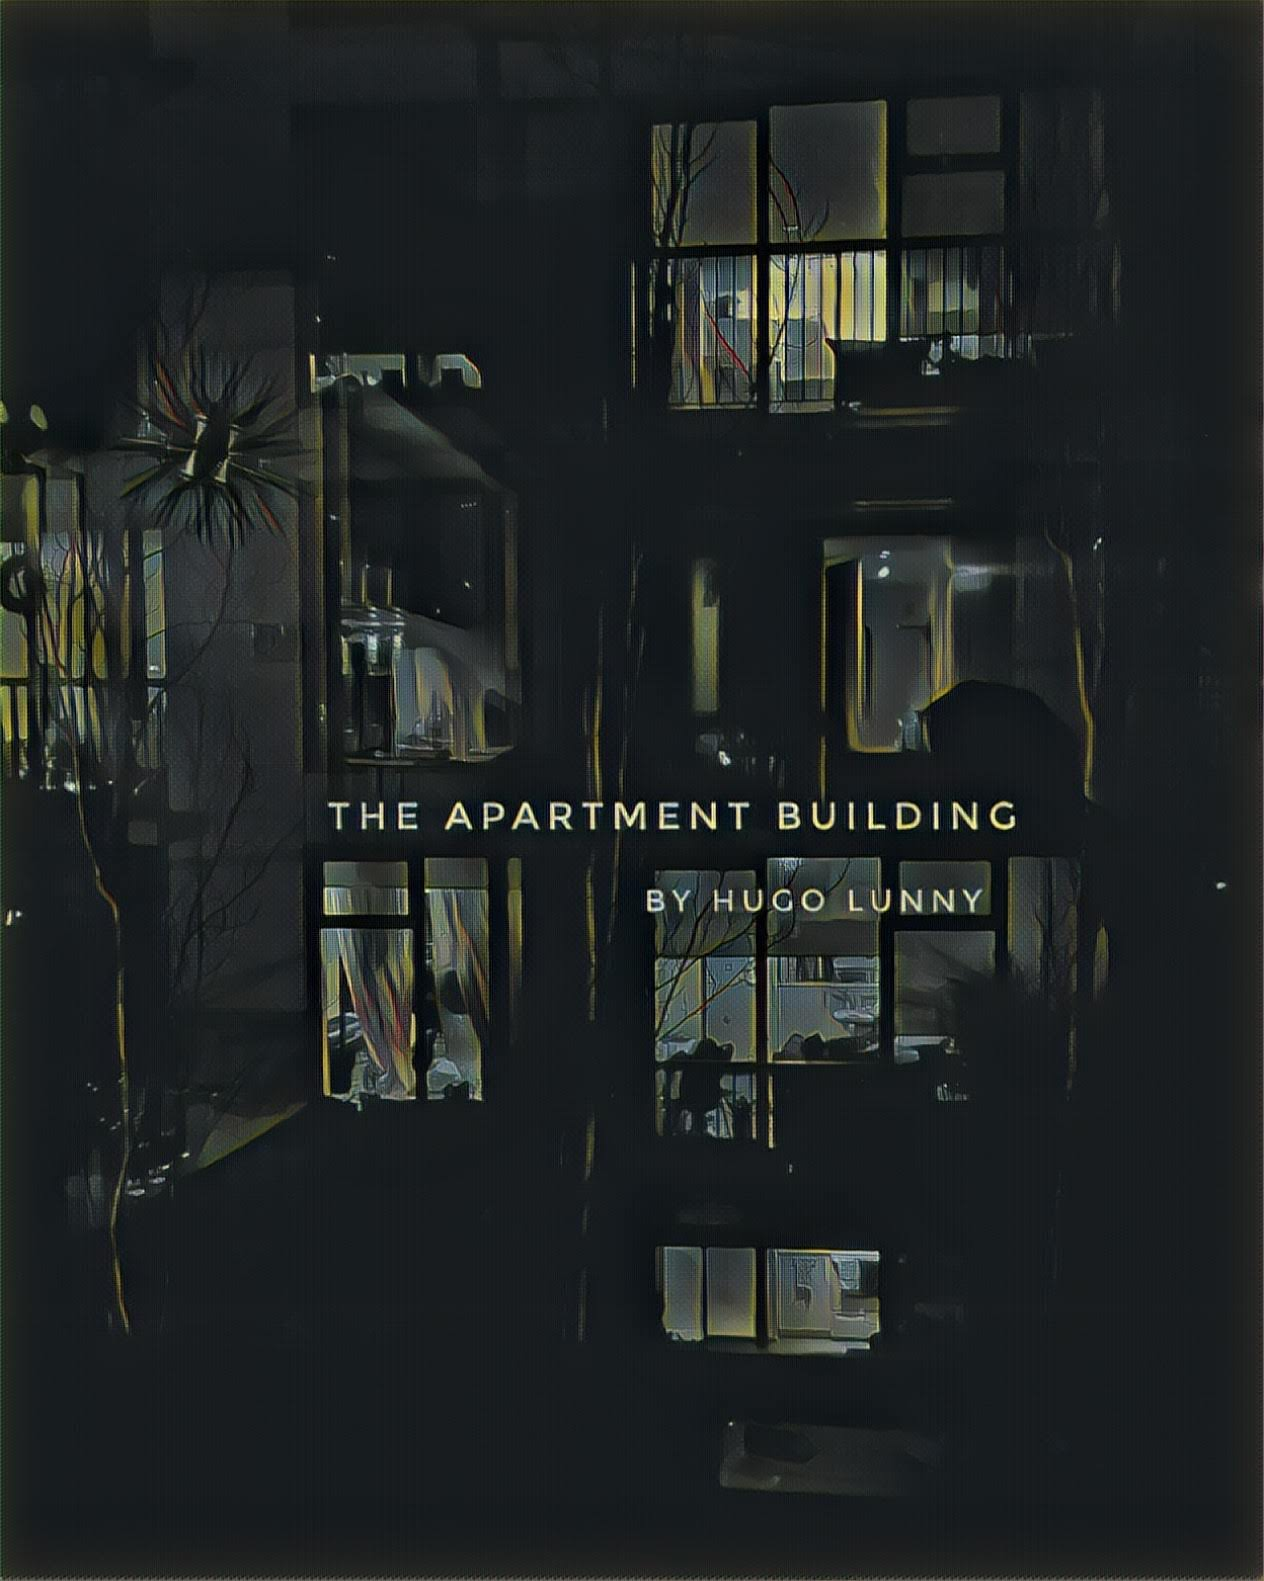 The Apartment Building screenplay